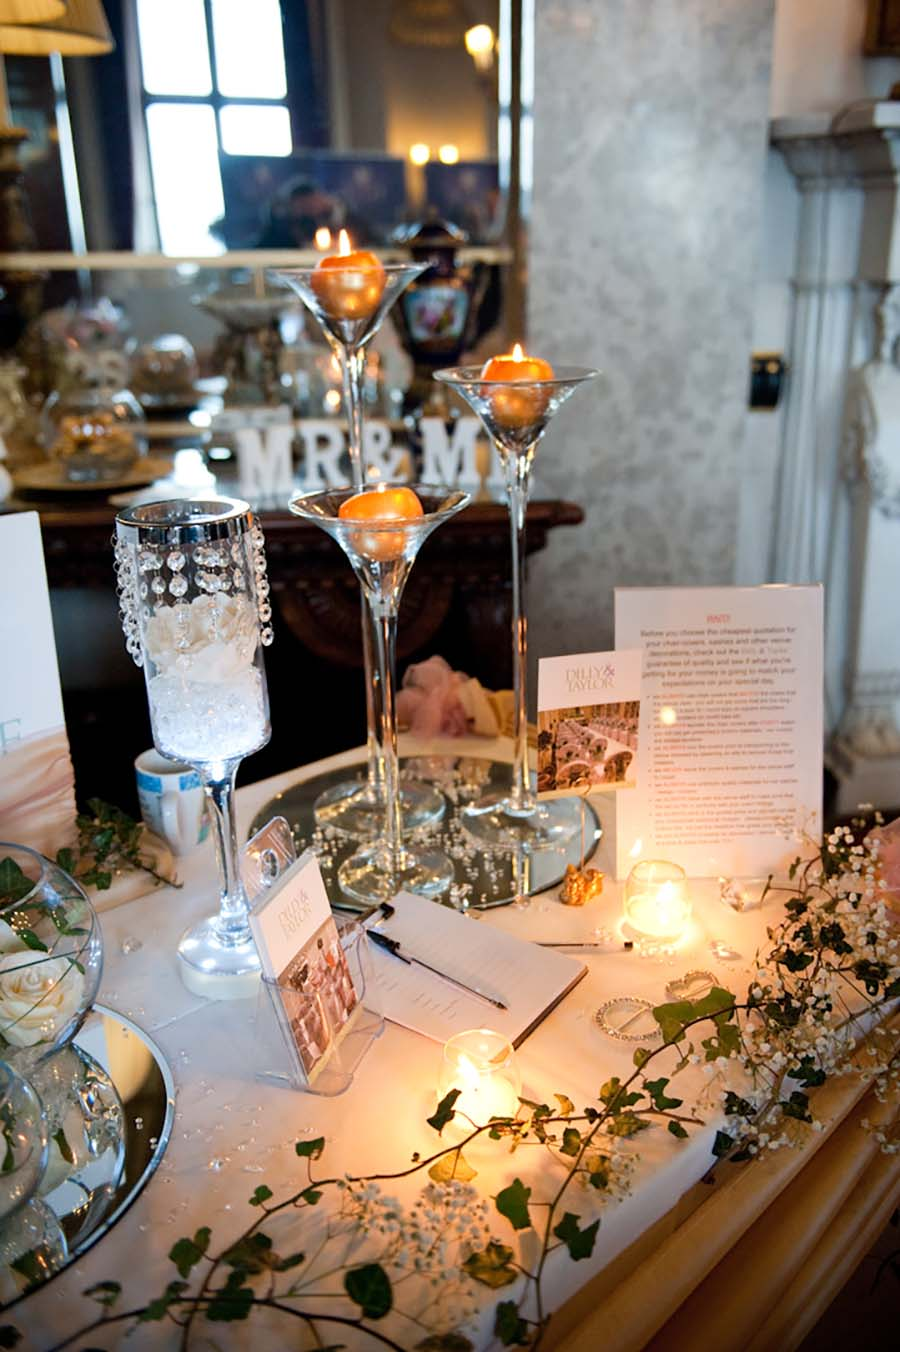 Buckinghams-at-belvoir-castle-wedding-fair-rachael-connerton-photography-94